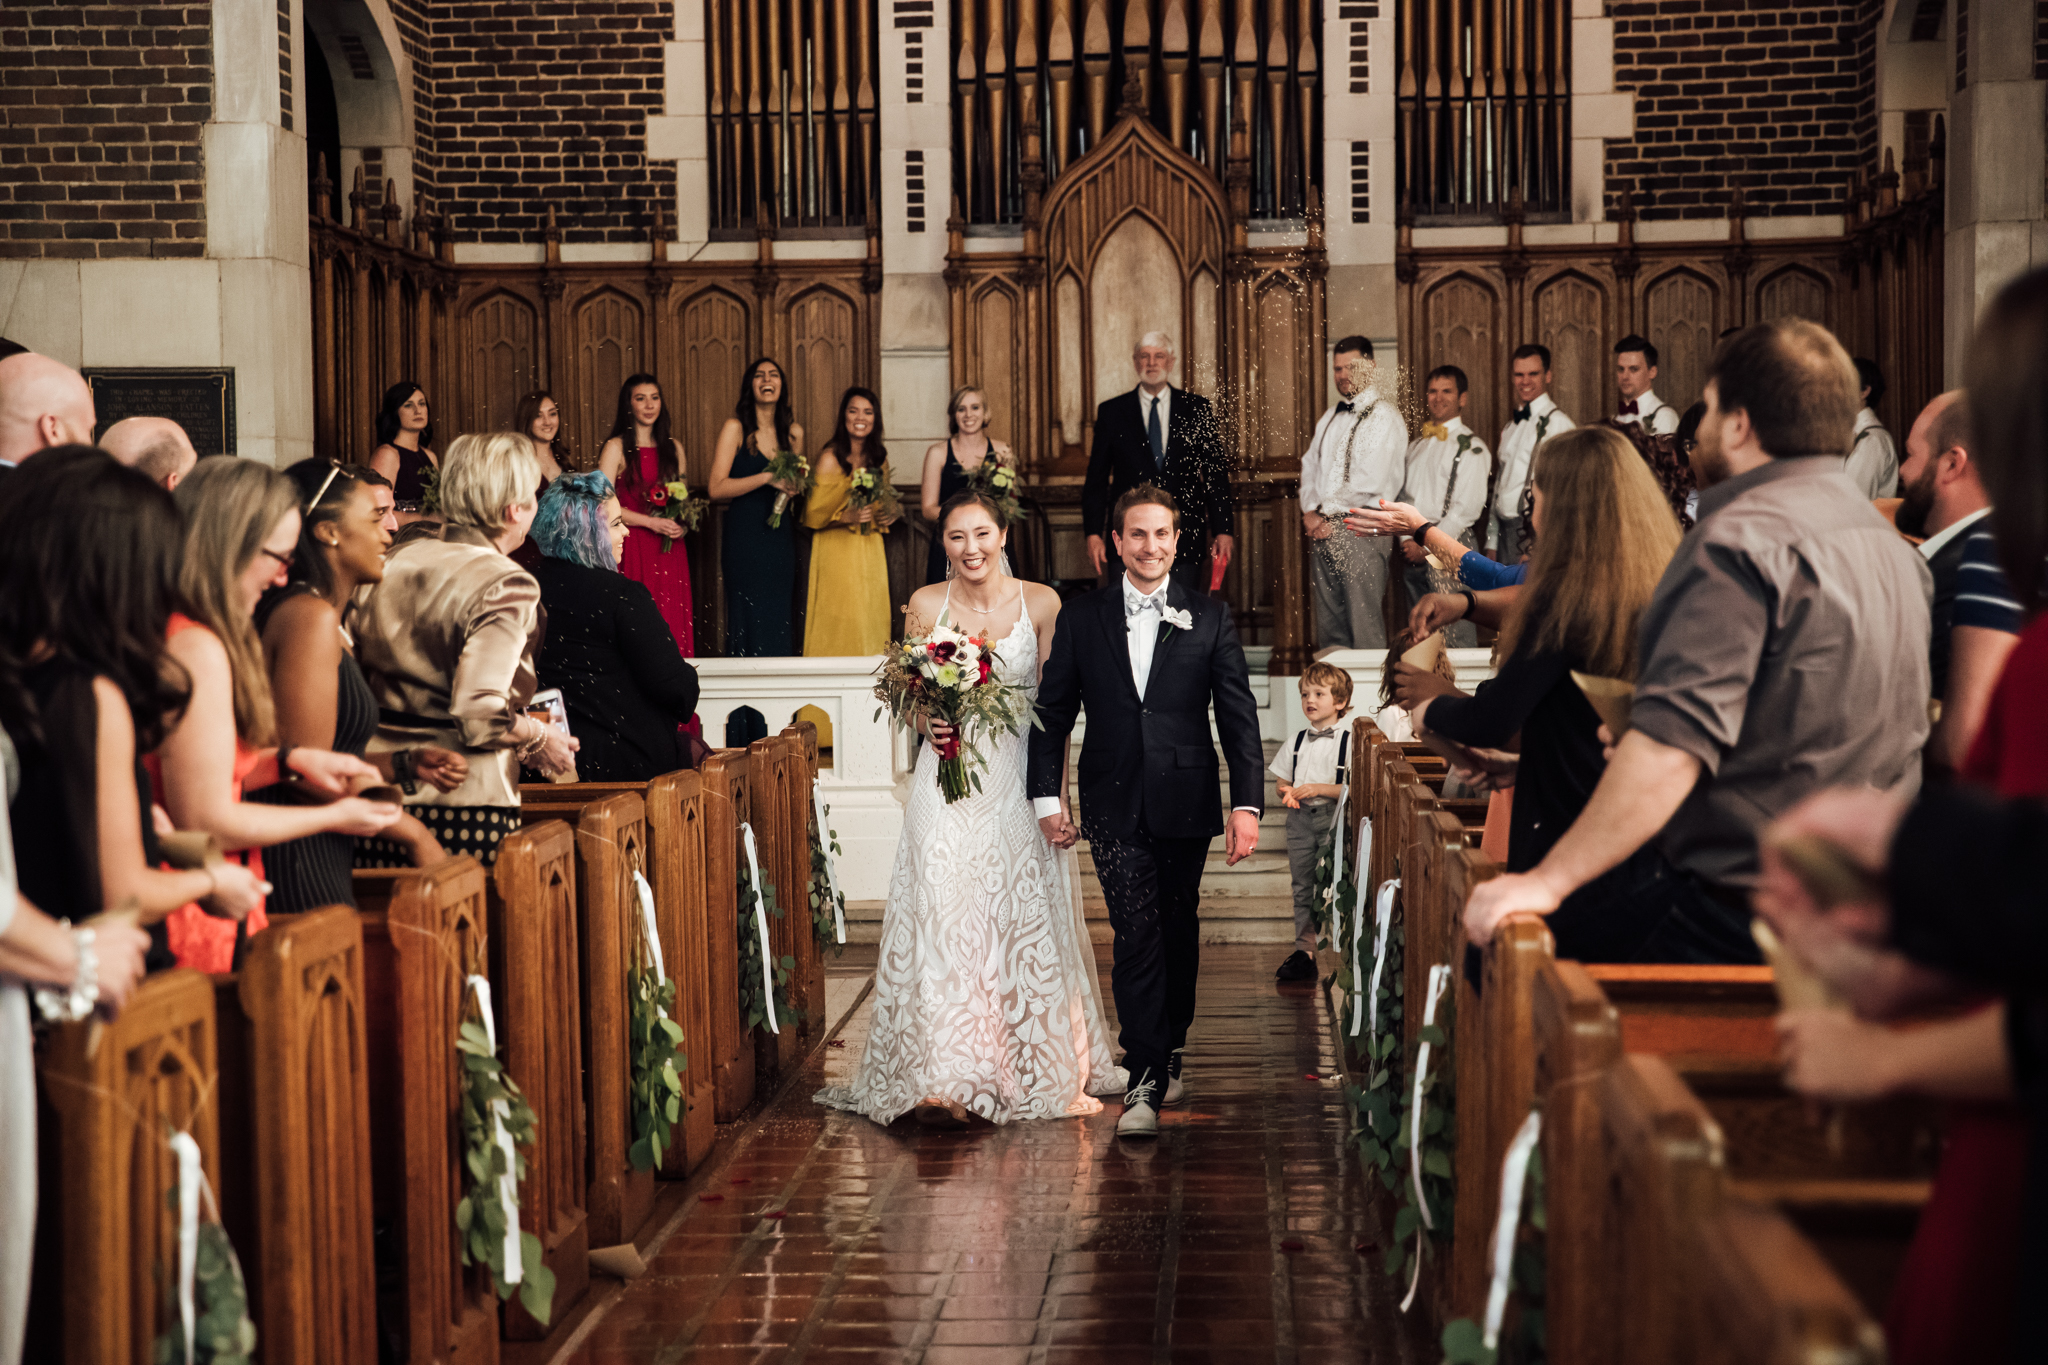 chattanooga-wedding-photographers-thewarmtharoundyou-waterhouse-pavilion-patten-chapel-wedding-sam-dusty (92 of 269).jpg